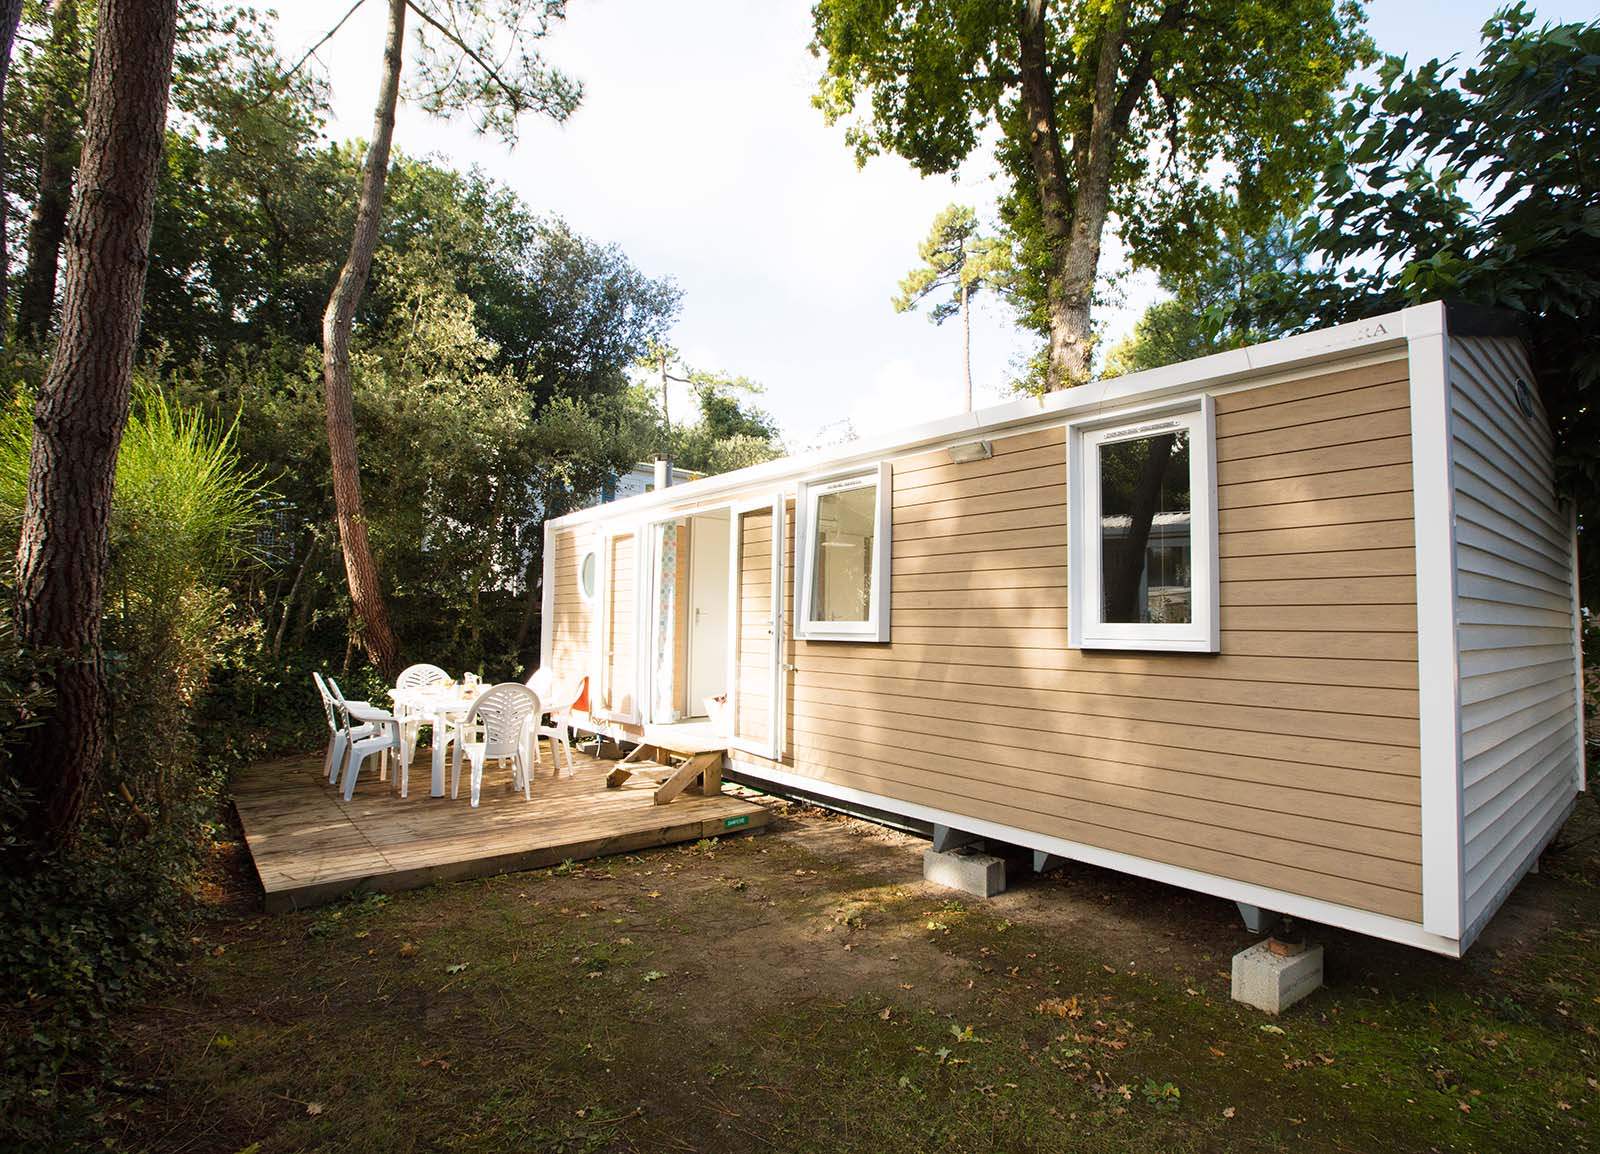 Cottage Pins 3 bedrooms Evasion - Mobile home rental in Charente-Maritime